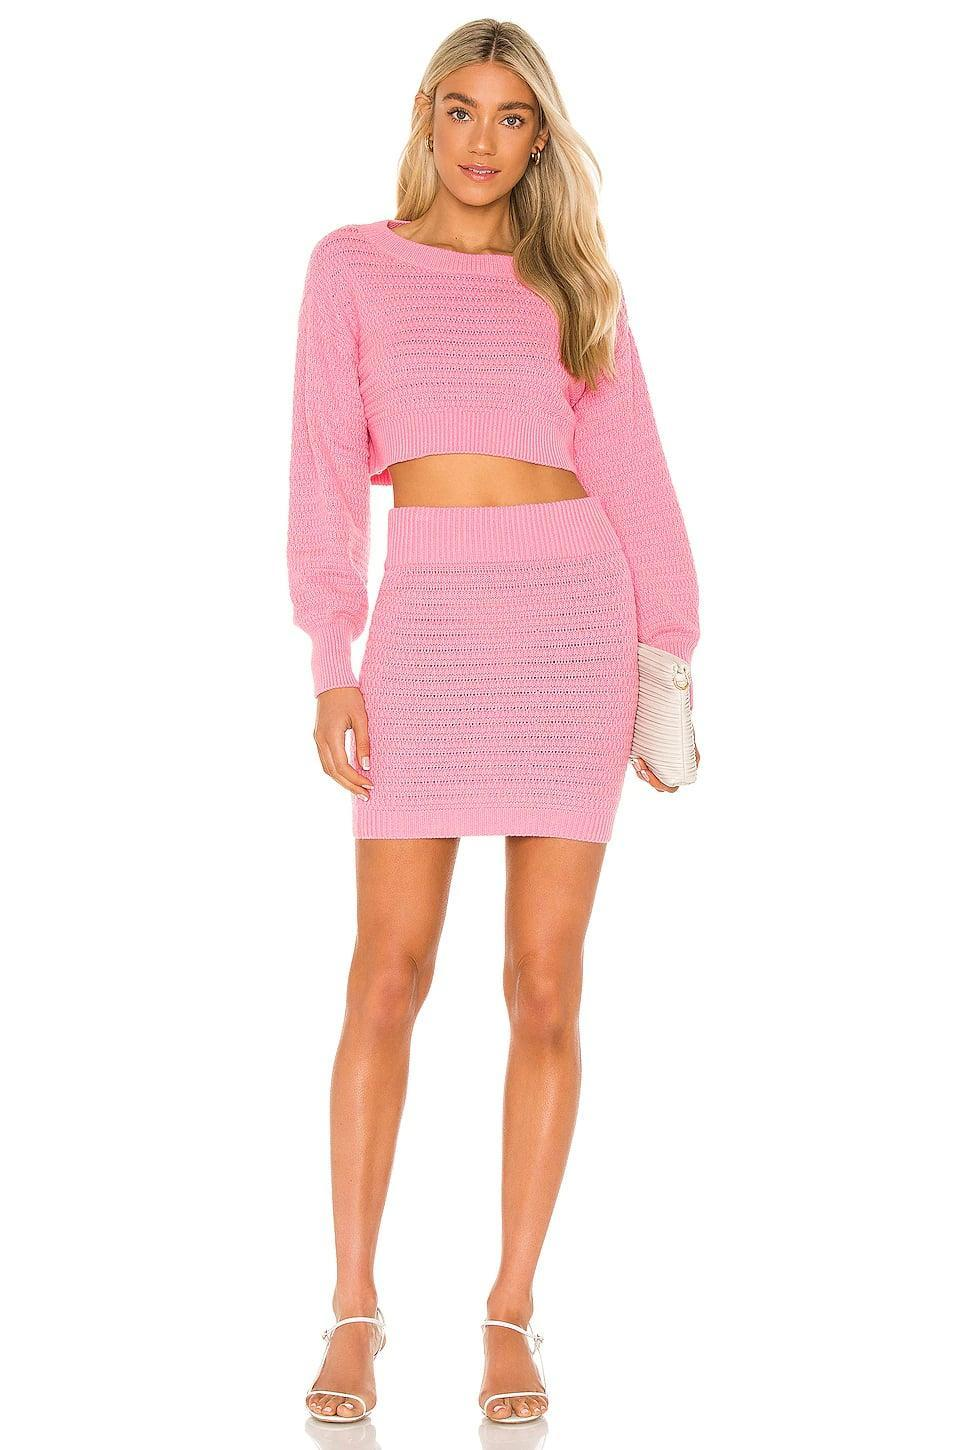 <p>I'm a sucker for a matching set, and the <span>Majorelle Rhea Sweater</span> ($158) and <span>Mini Skirt</span> ($128) are giving me the best kind of Barbie vibes.</p>